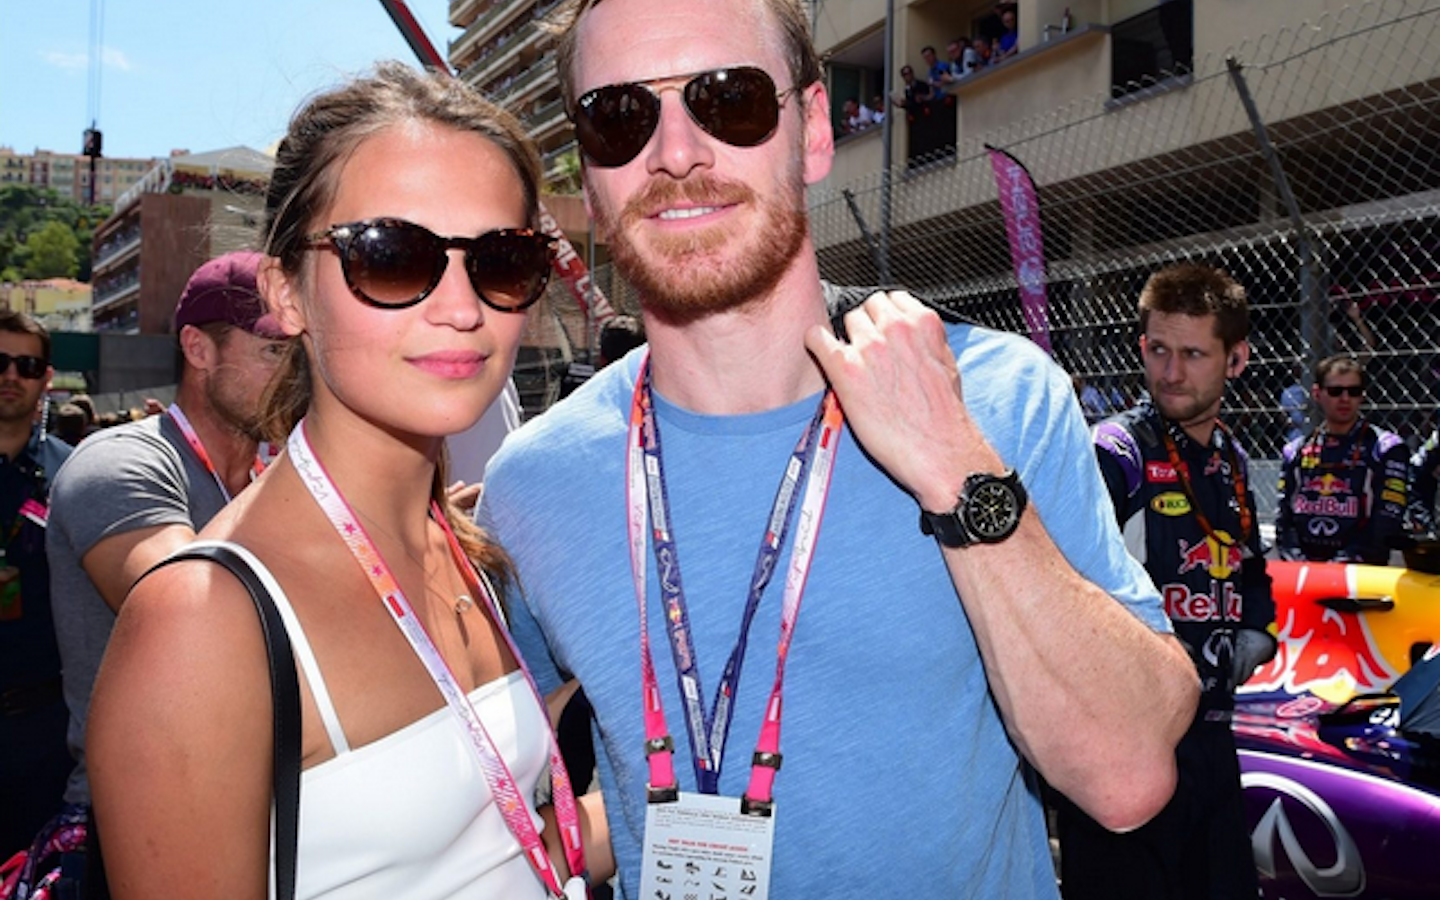 Actor Michael Fassbender with girlfriend/actor Alicia Vikander at the Monaco Grand Prix Race, May 2015.